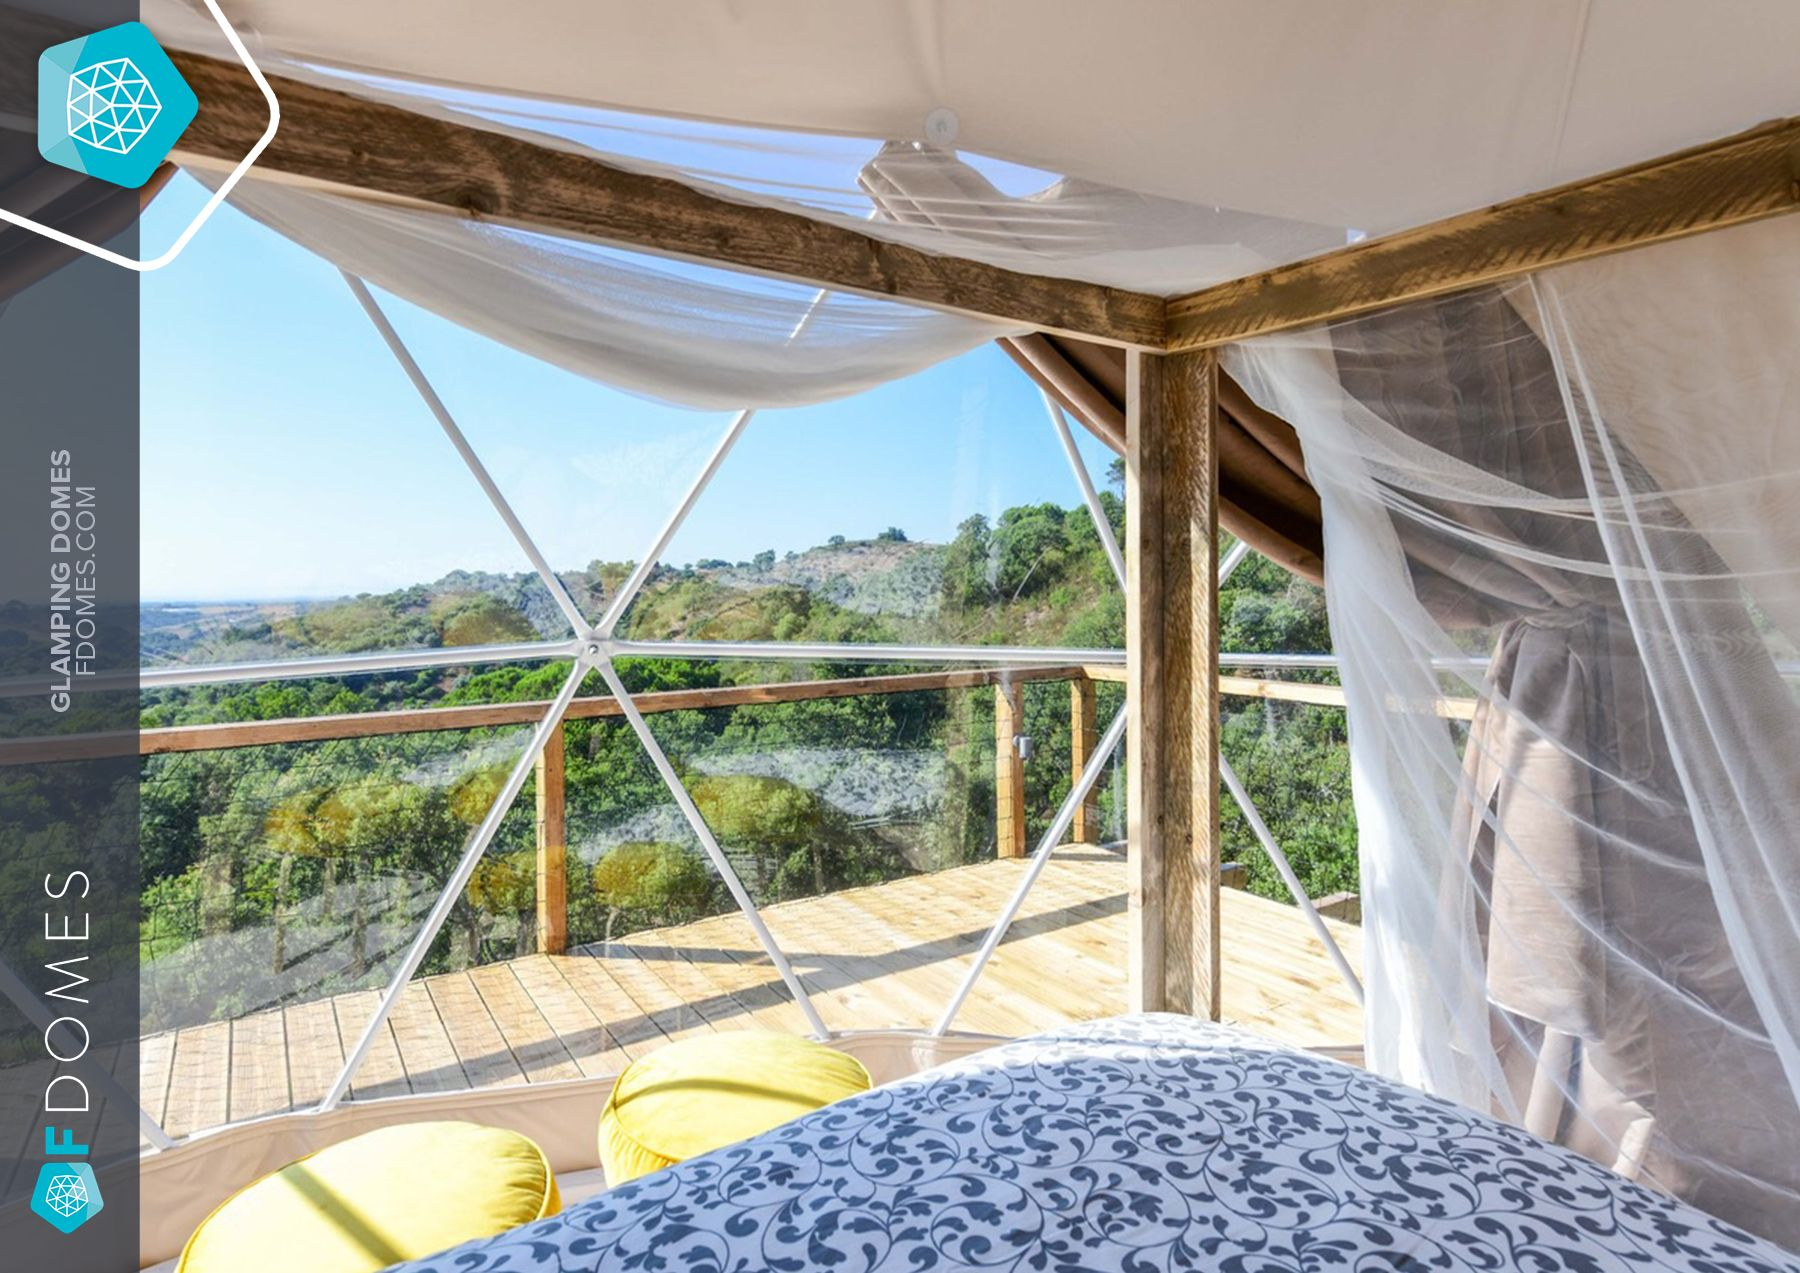 Stunning view from Glamping Geopod in Portugal  #glamping